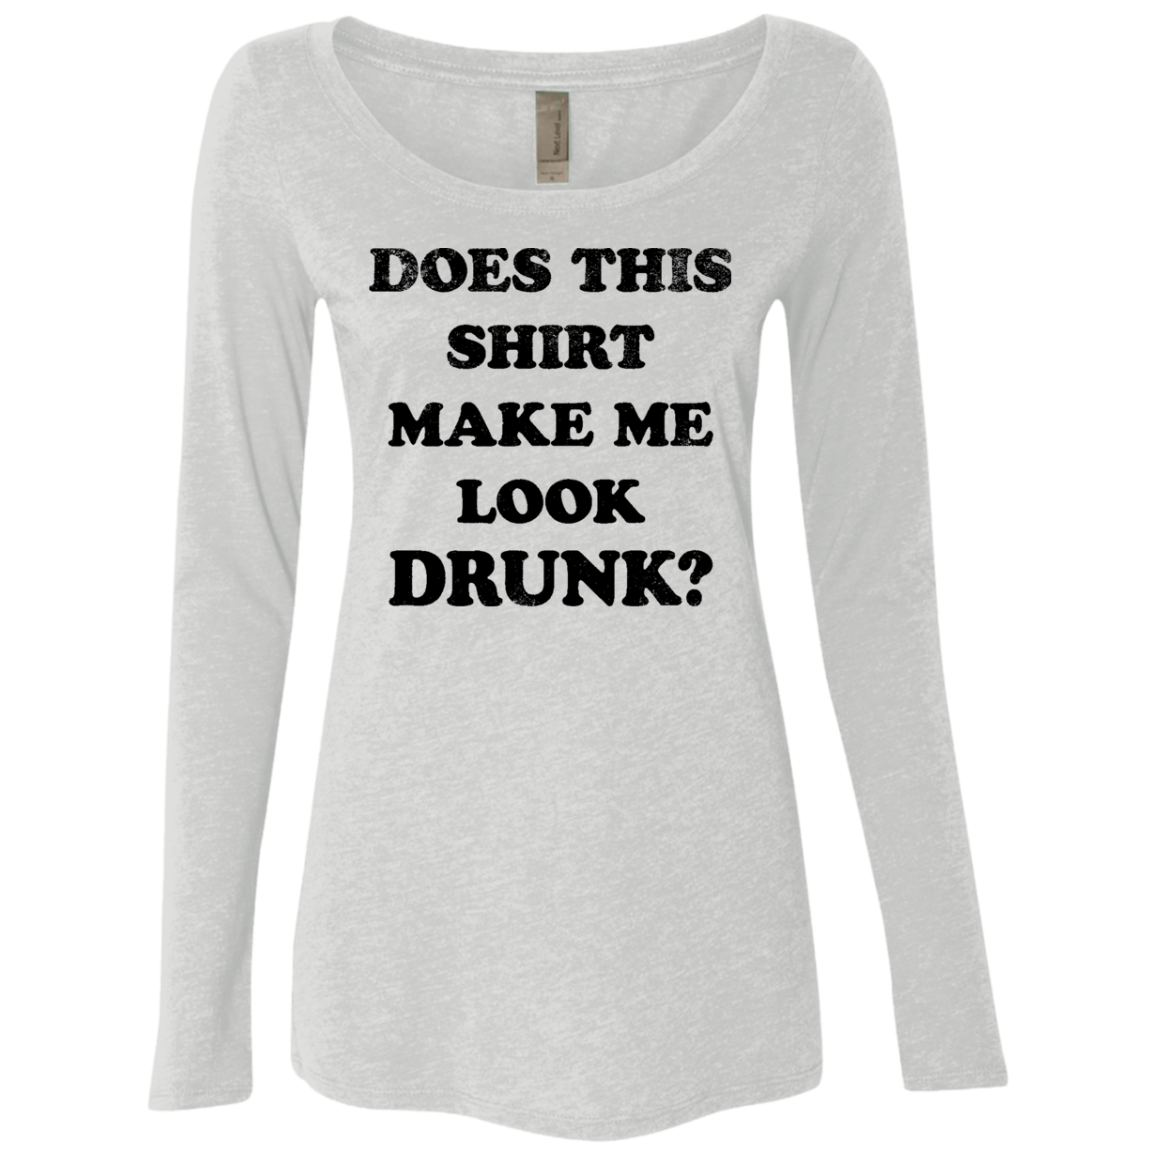 Does This Shirt Make Me Look Drunk Women's Long Sleeve Tee